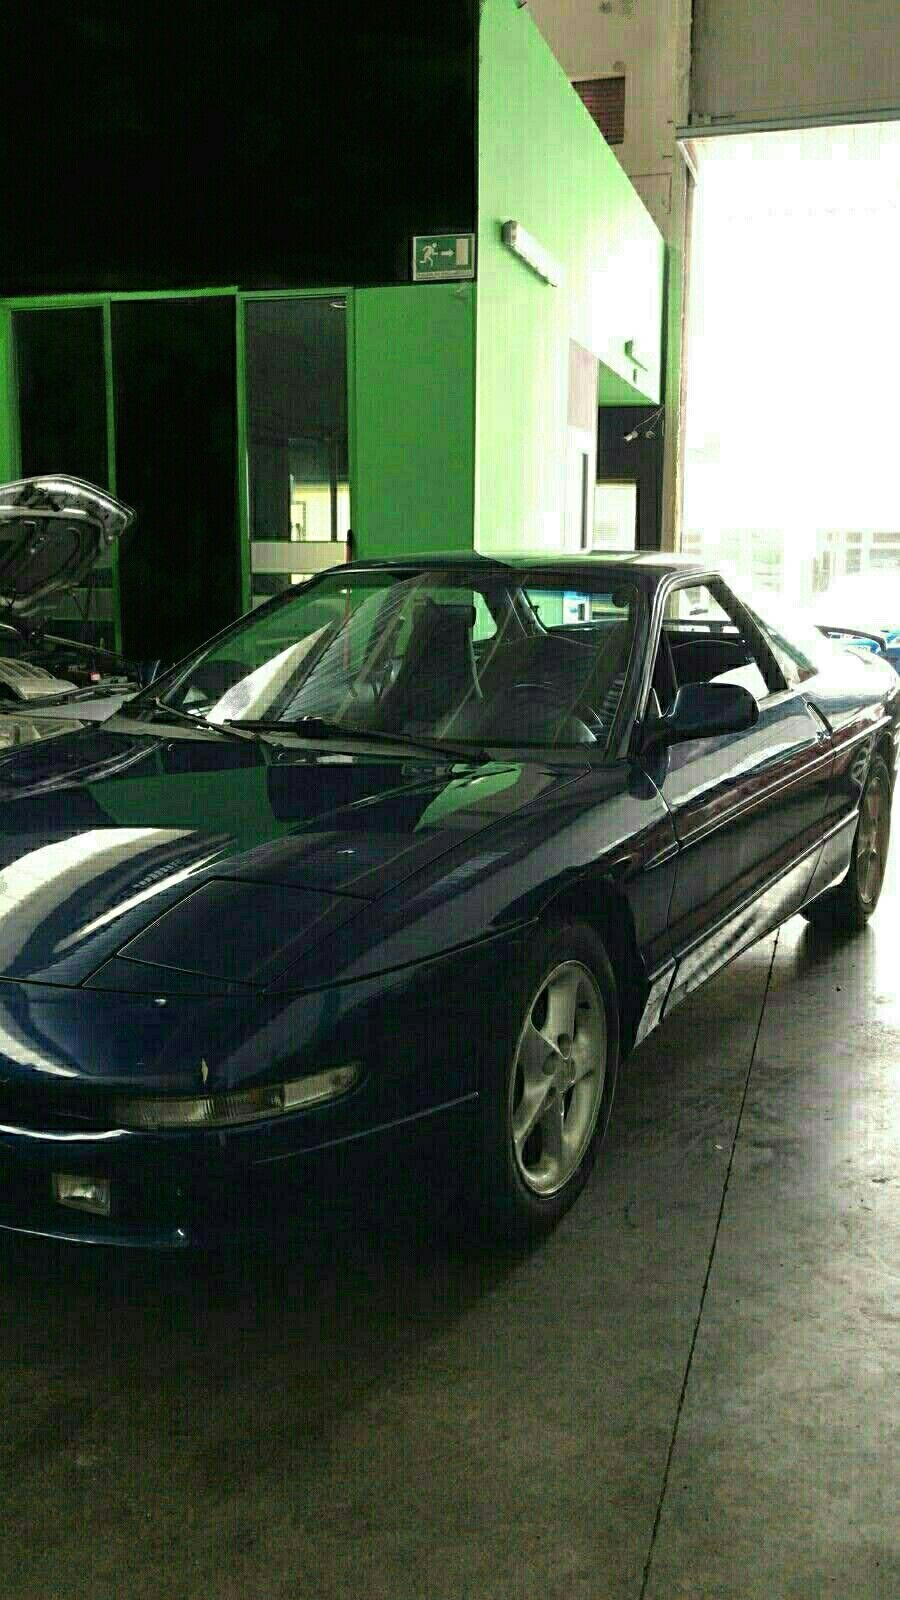 Ford Probe Gt Black In 2020 Ford Probe Gt Ford Probe Ford Gt